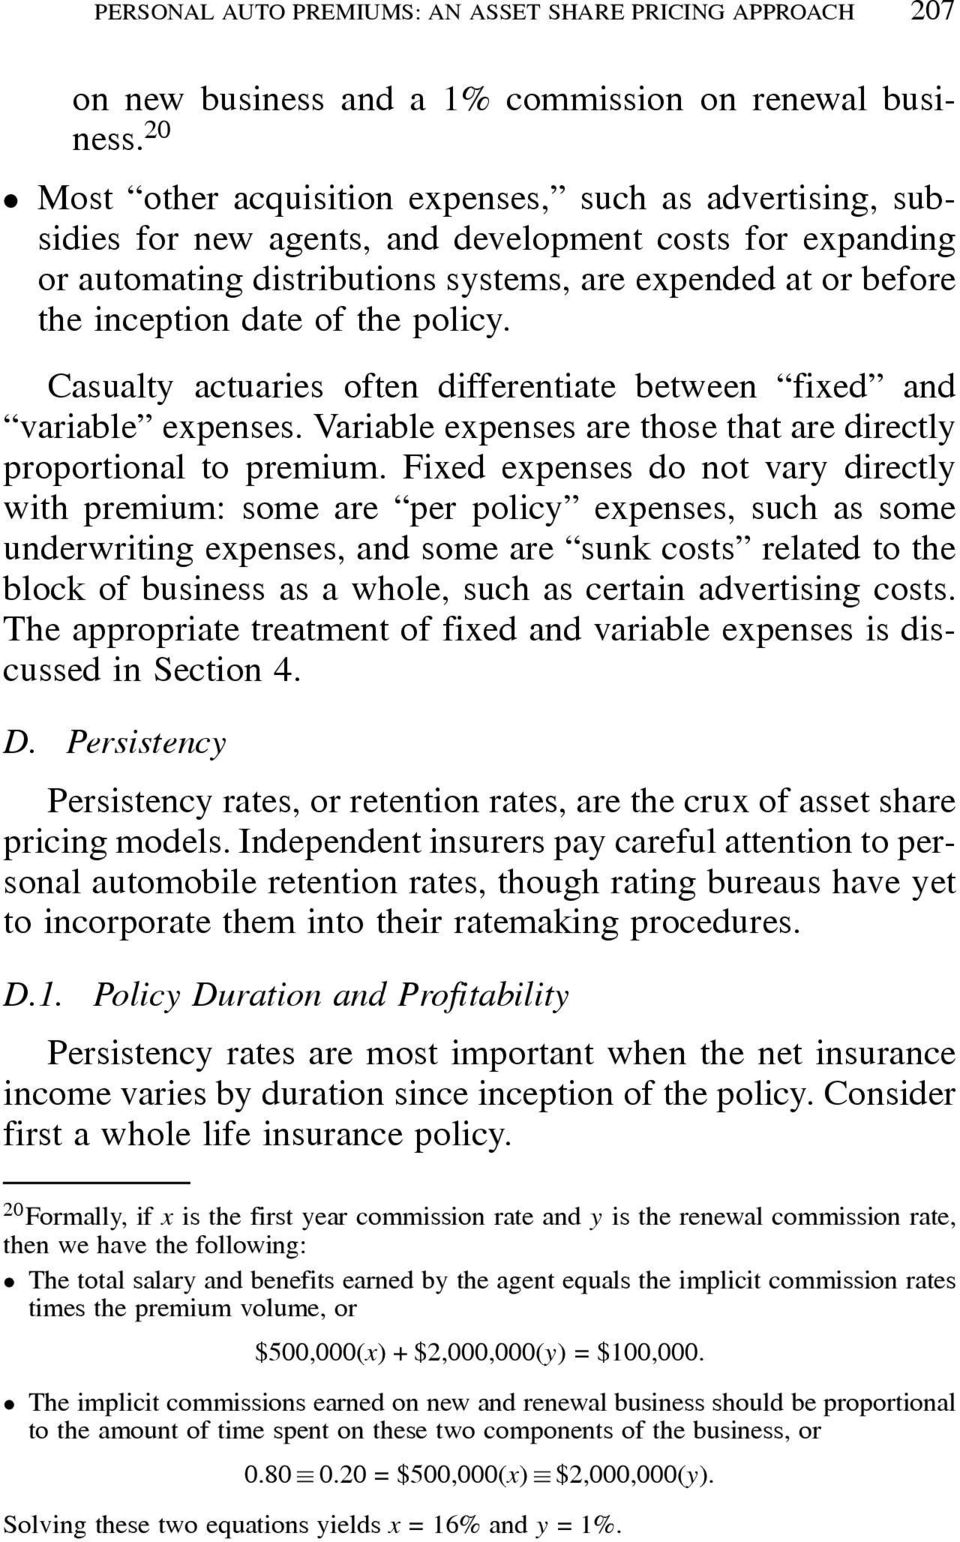 date of the policy. Casualty actuaries often differentiate between fixed and variable expenses. Variable expenses are those that are directly proportional to premium.